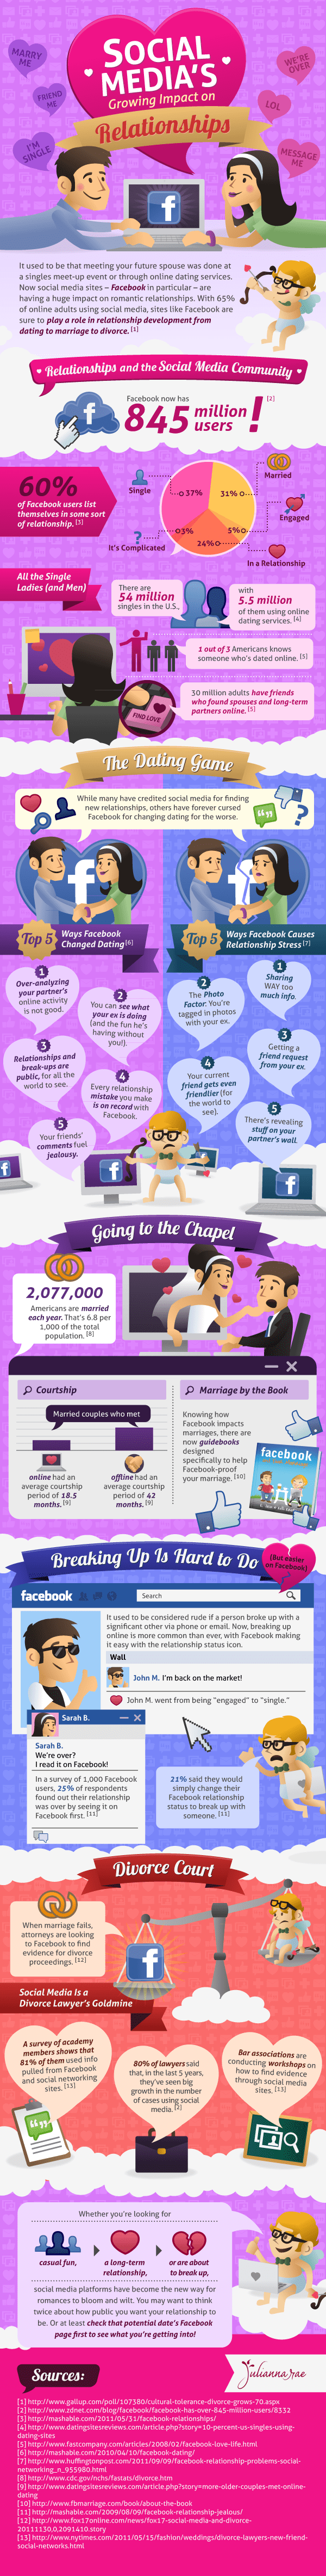 social-medias-impact-on-relationships